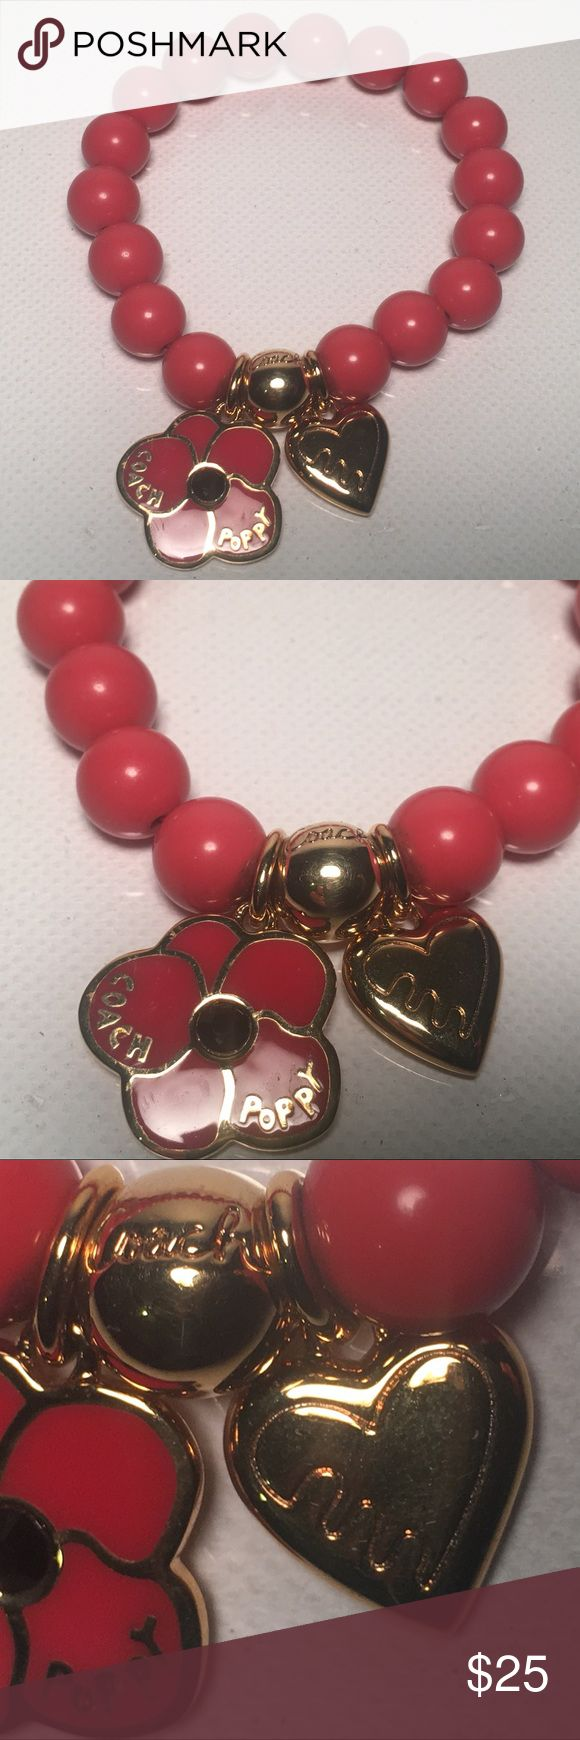 COACH Poppy Heart Flower Bead Bracelet Authentic COACH Poppy Heart Flower Bead Bracelet  A charming beaded piece in a brilliant shade of coral with mirror-bright gold plating and Coach signature charms. Beads and gold plating in mint condition ❤️😁💋 Coach Jewelry Bracelets